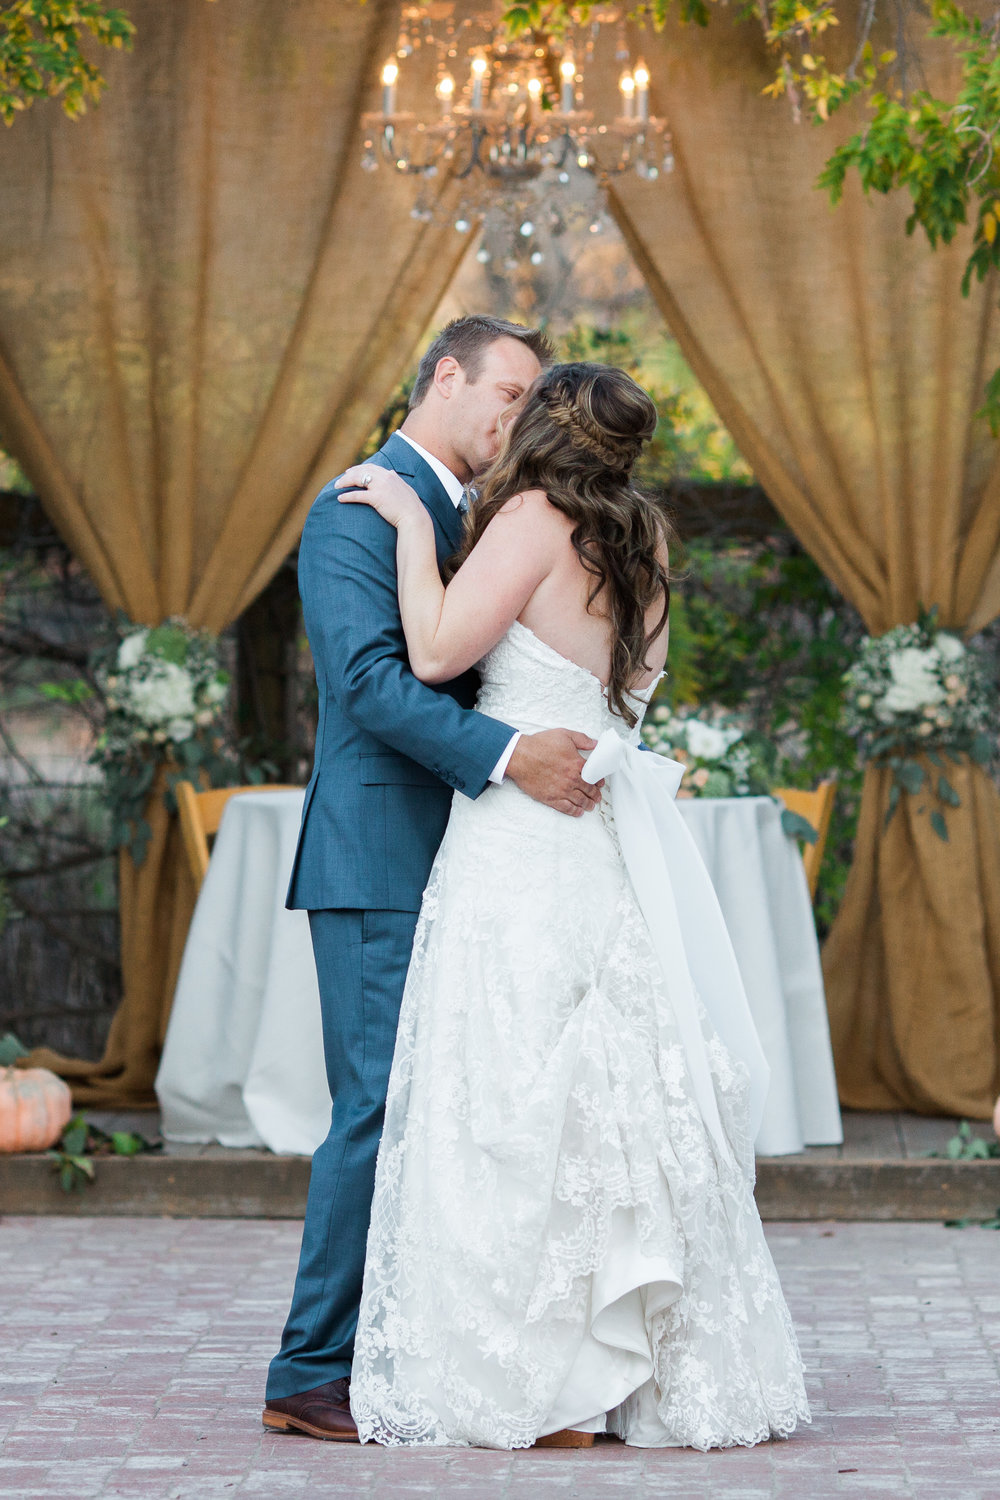 www.santabarbarawedding.com | The Gardens at Peacock Farms | Jennifer Lourie | Bride and Groom | First Dance